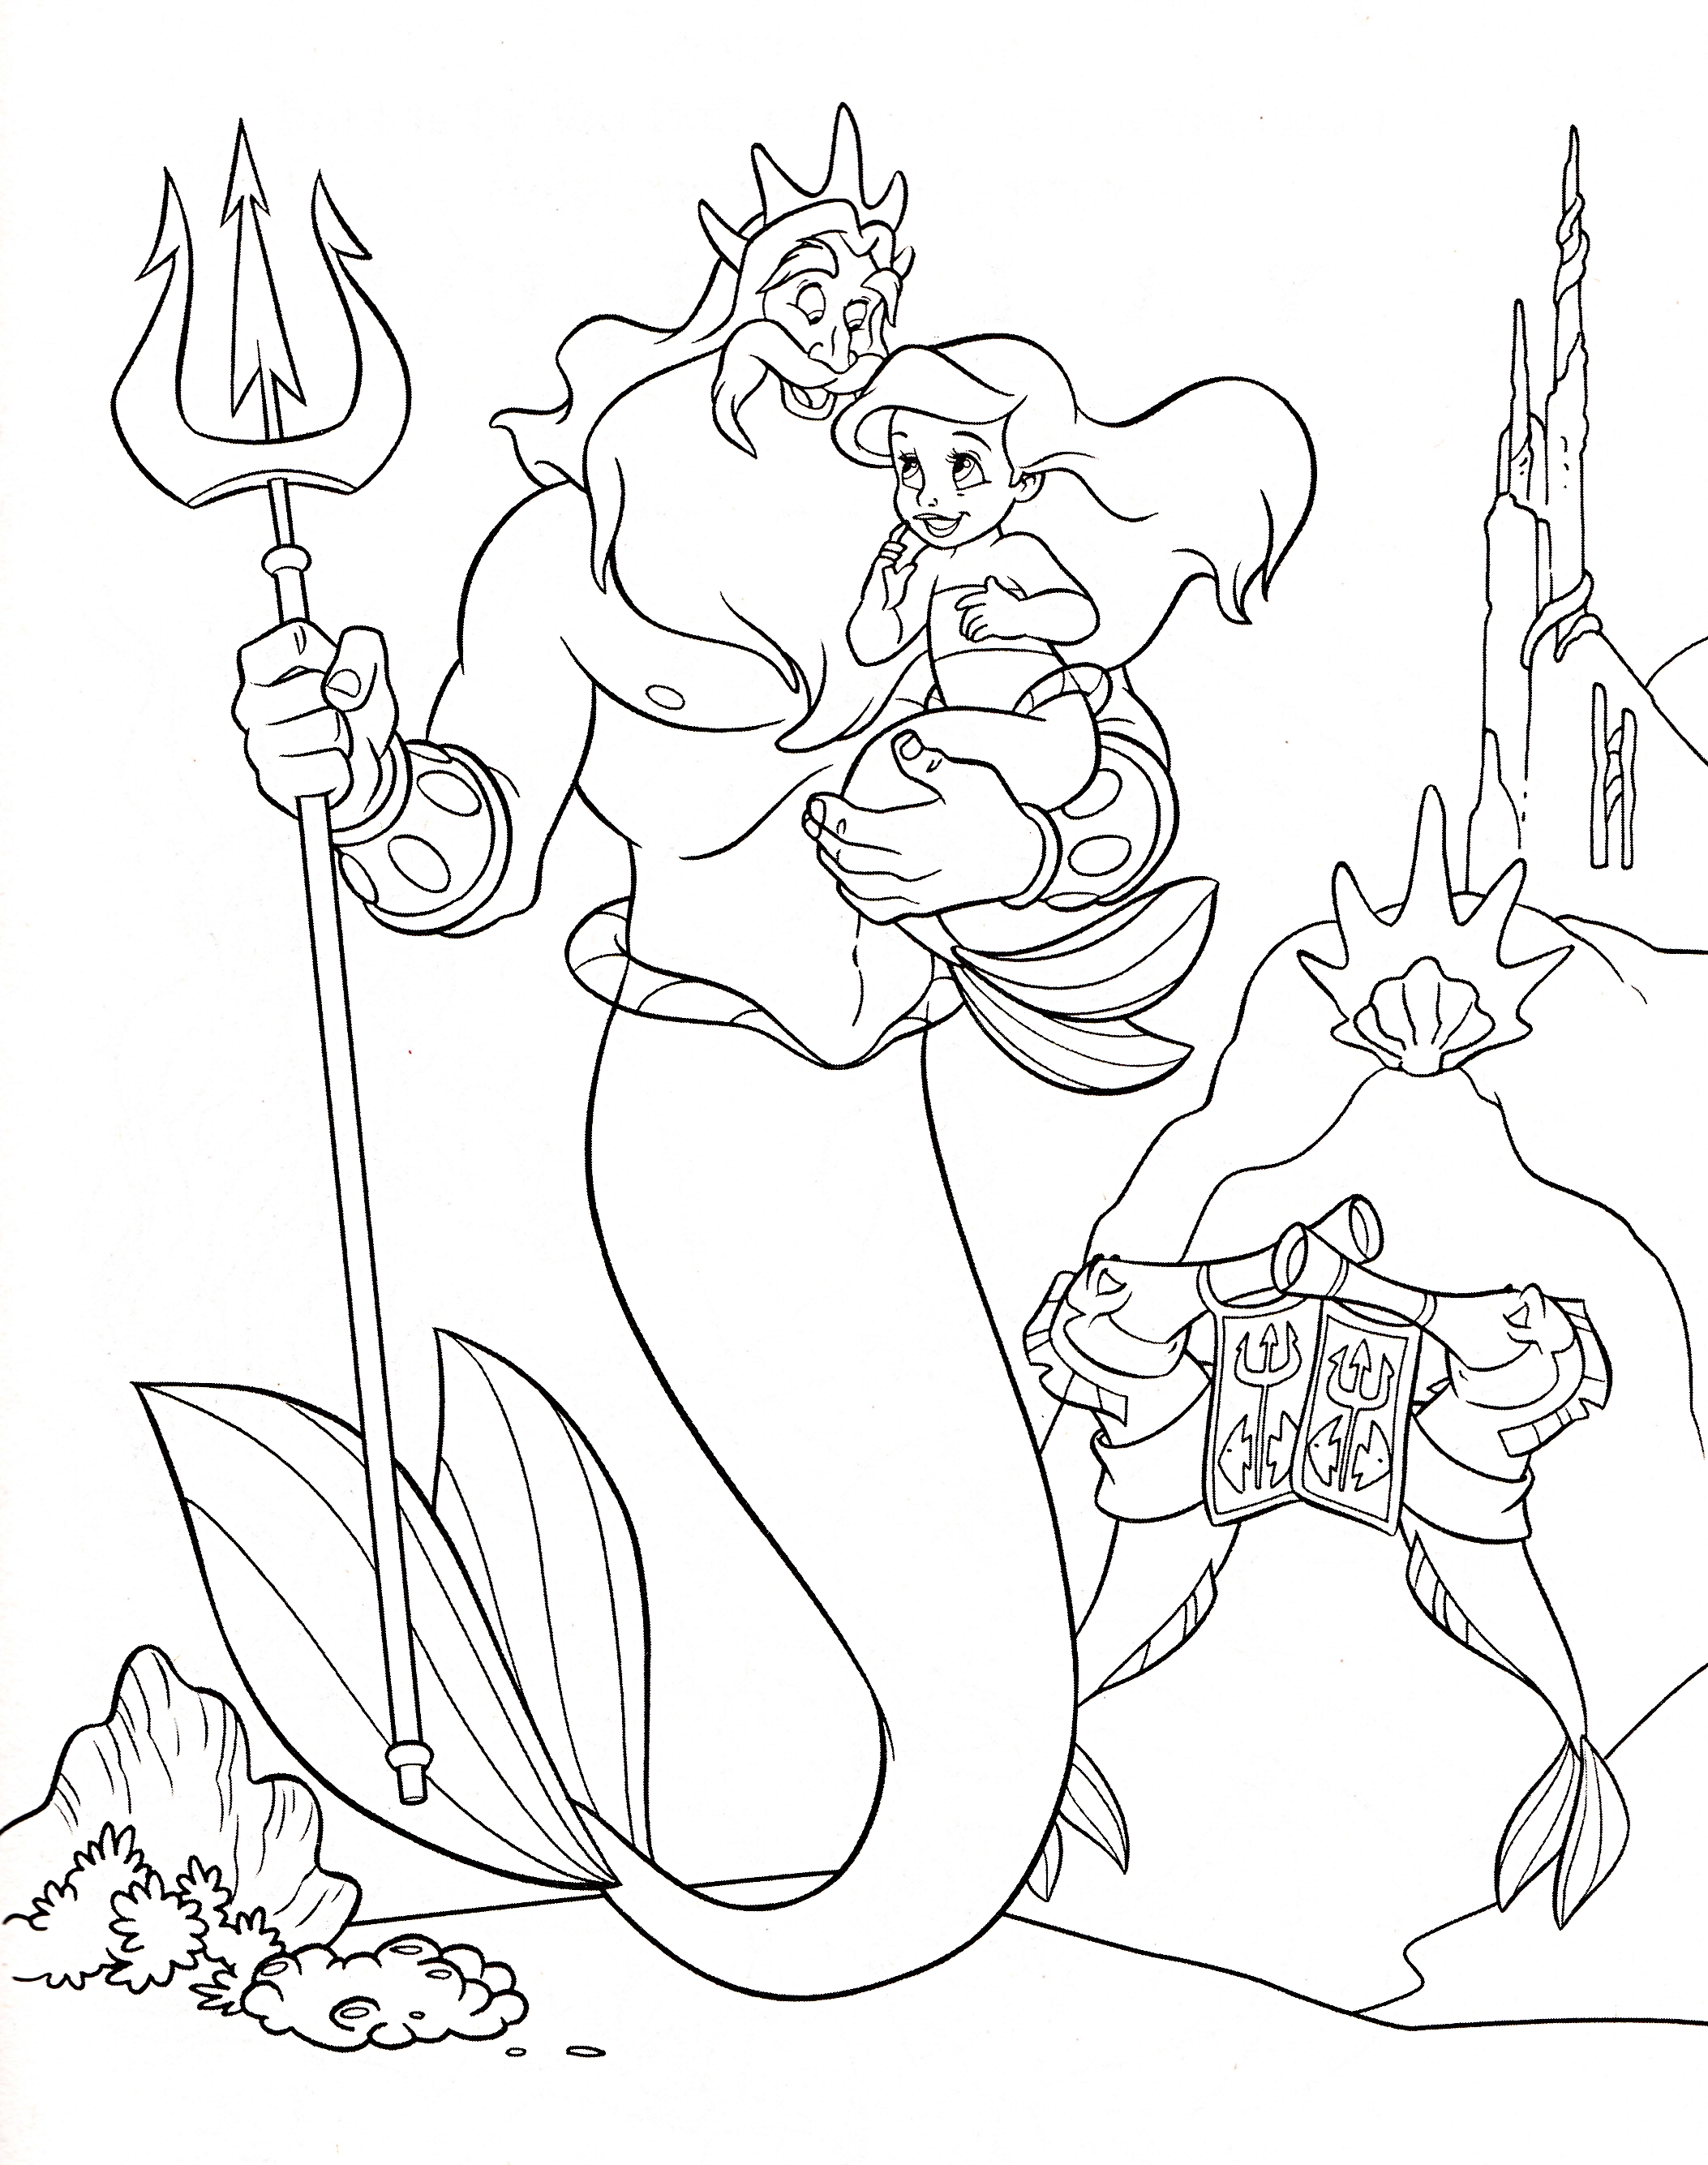 Walt Disney Characters Images Walt Disney Coloring Pages Disney Princess Baby Ariel Coloring Pages